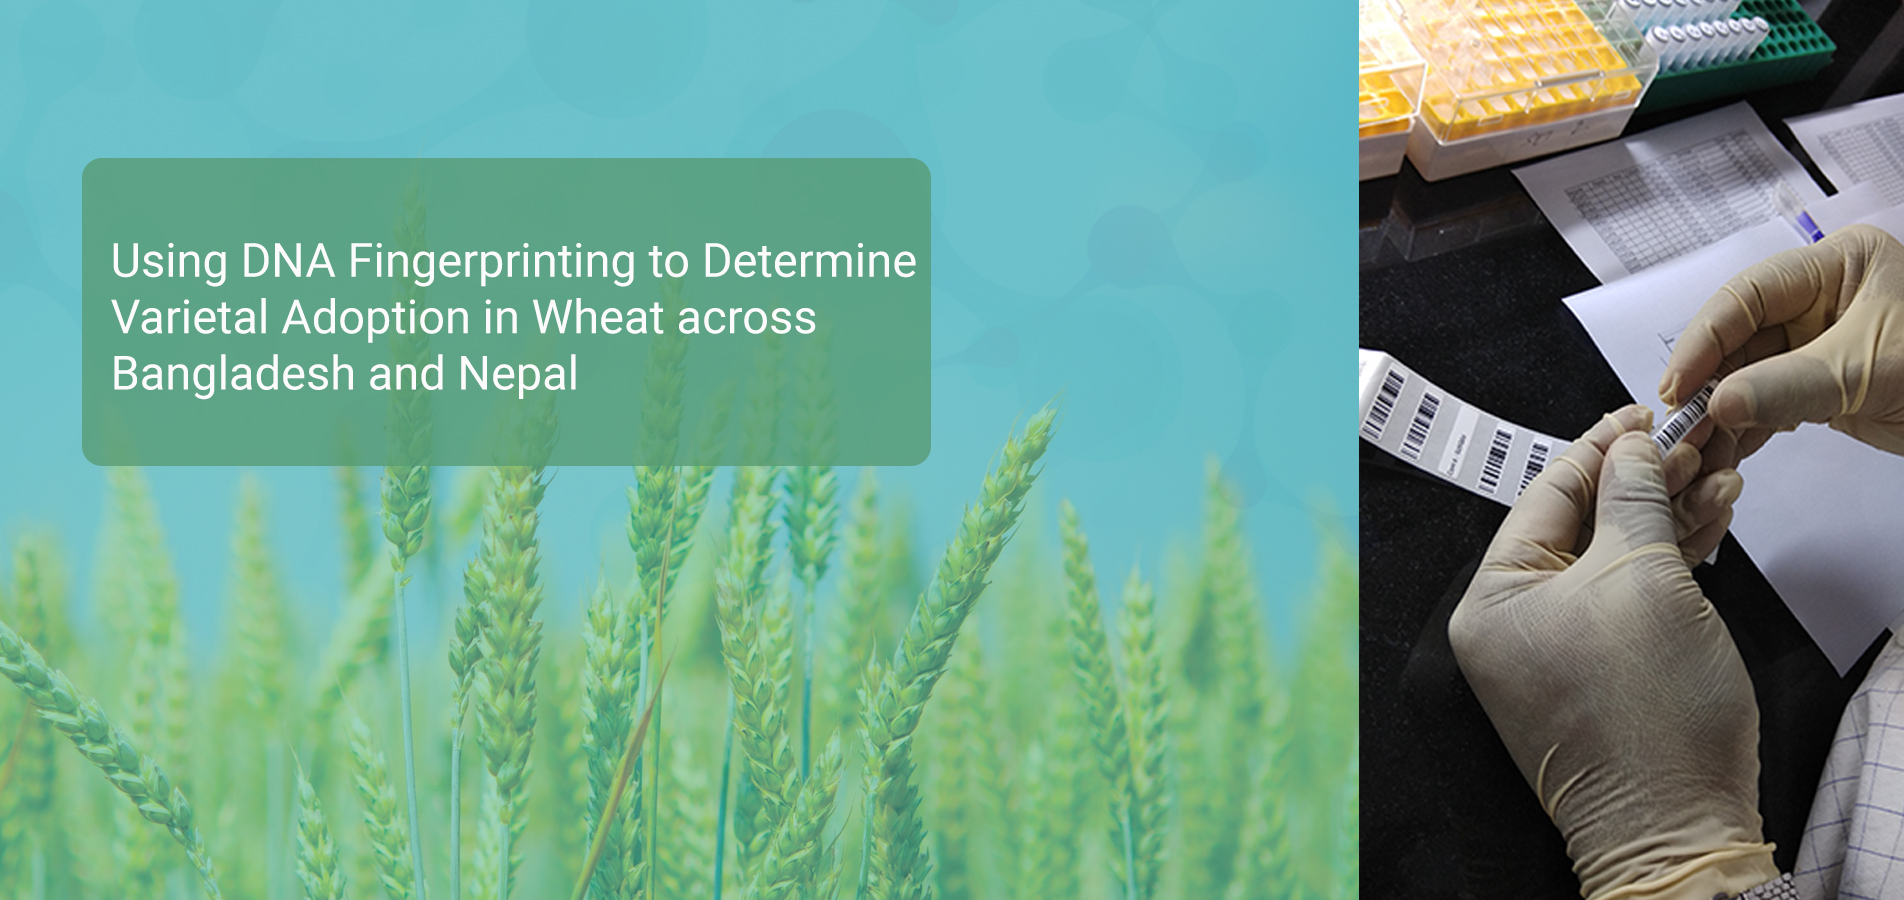 using-dna-fingerprinting-to-determine-varietal-adoption-in-wheat-across-bangladesh-and-nepal